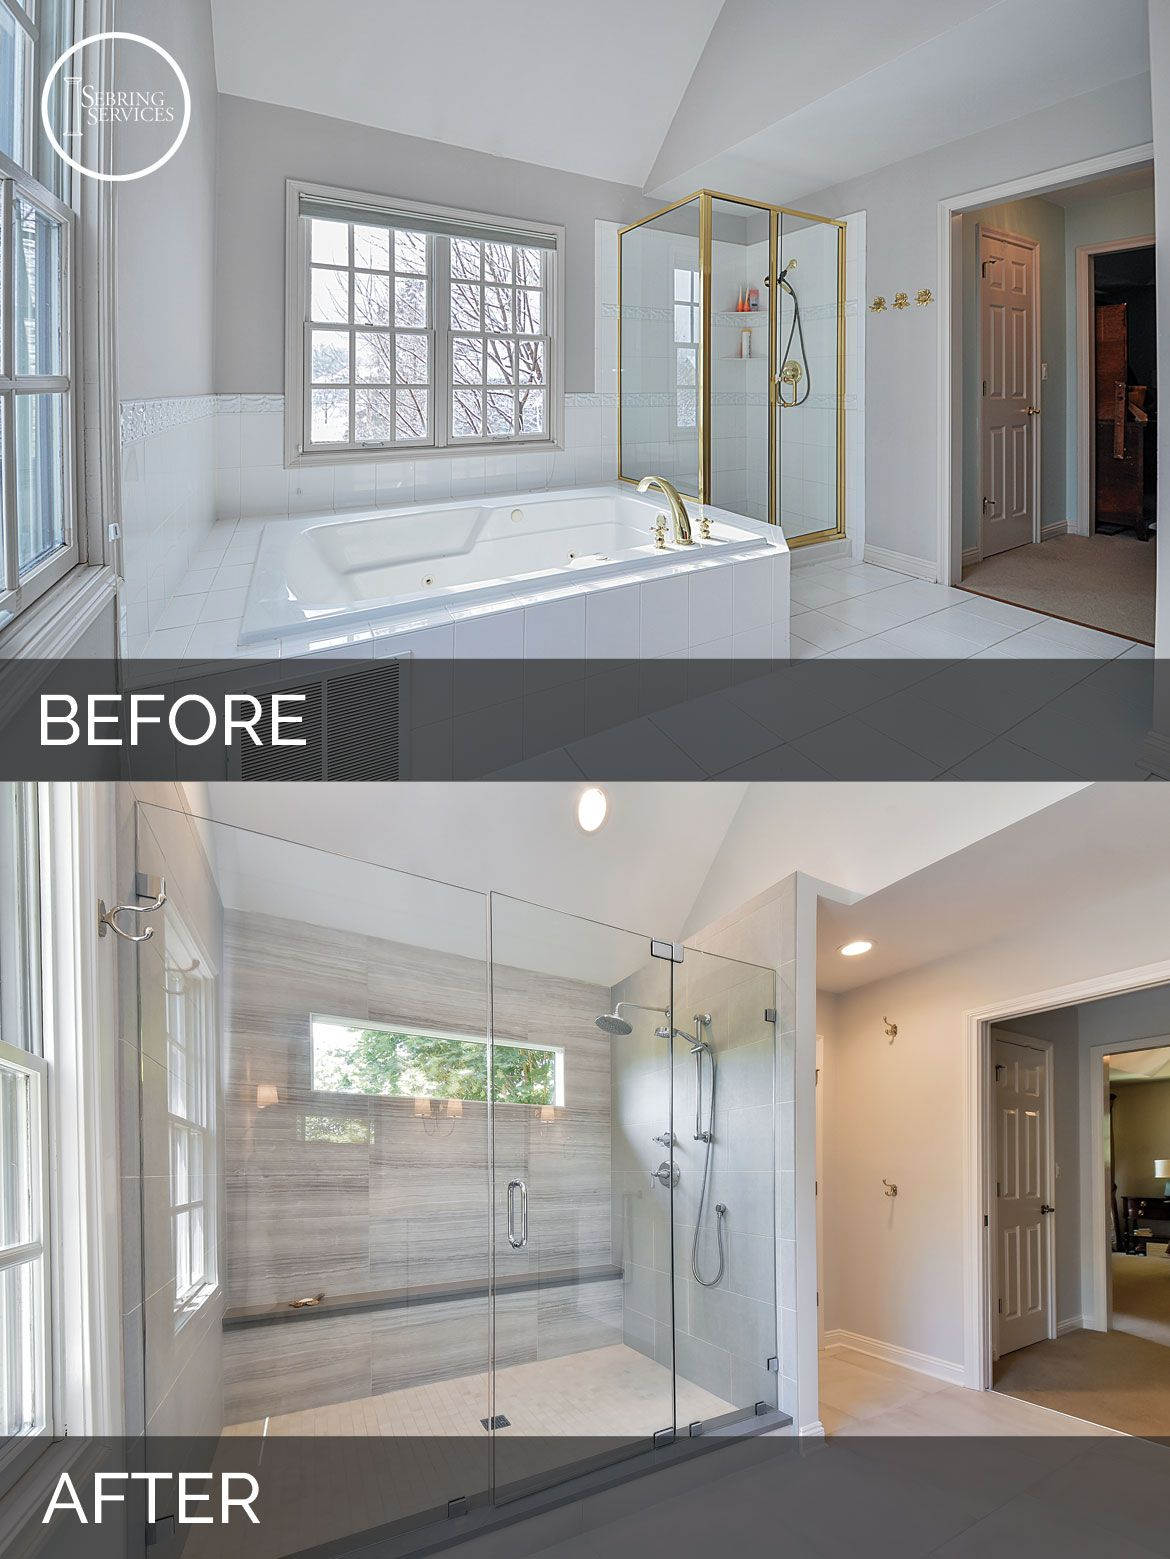 Carl susan 39 s master bath before after pictures for Master bed and bath remodel